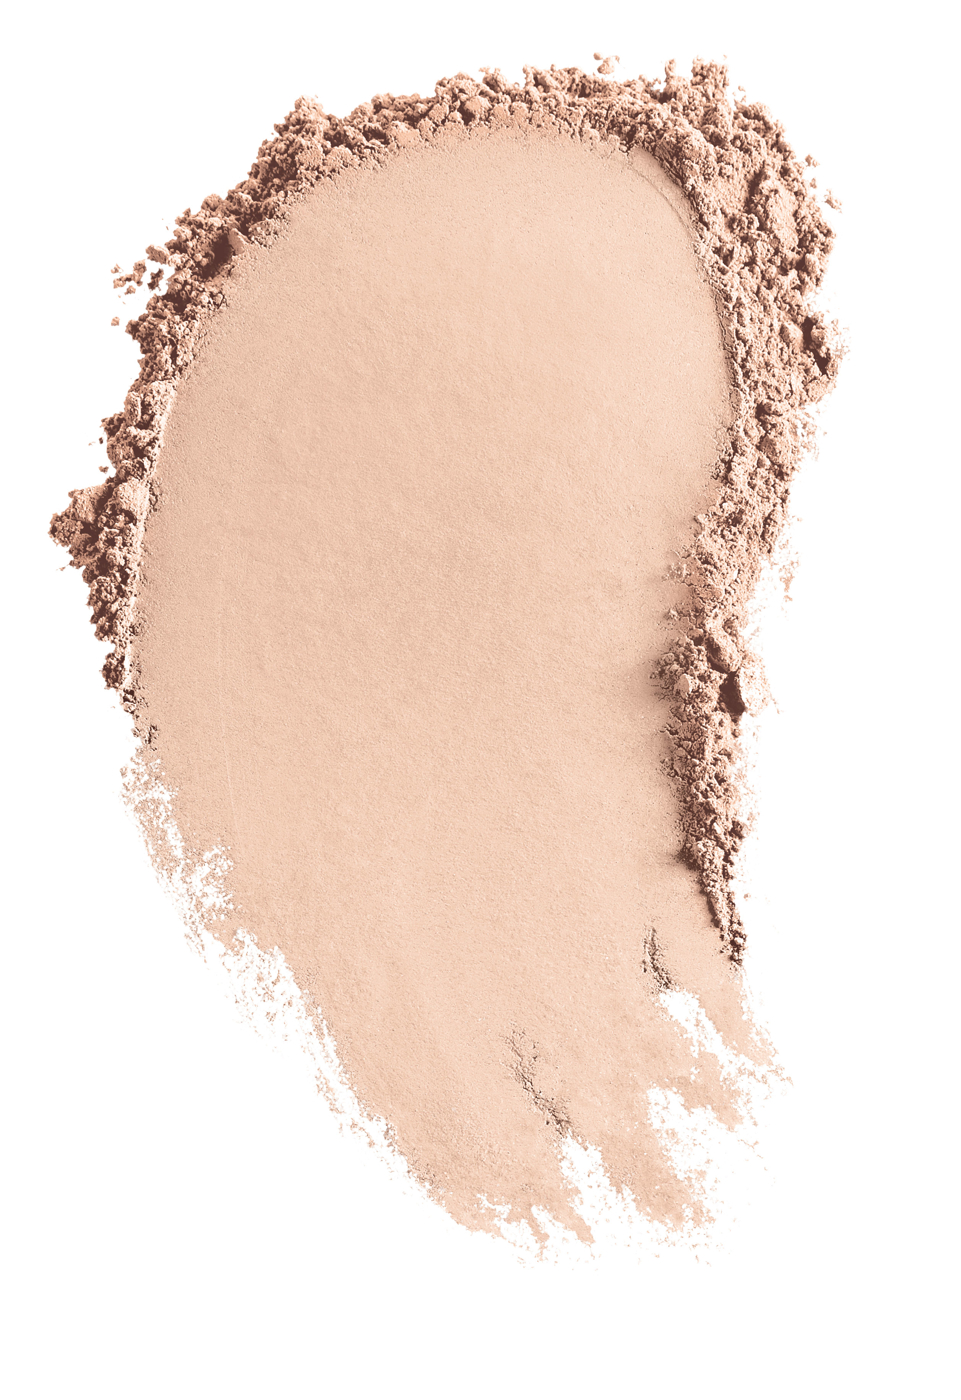 Original_Foundation_Fairly_Medium_Smear